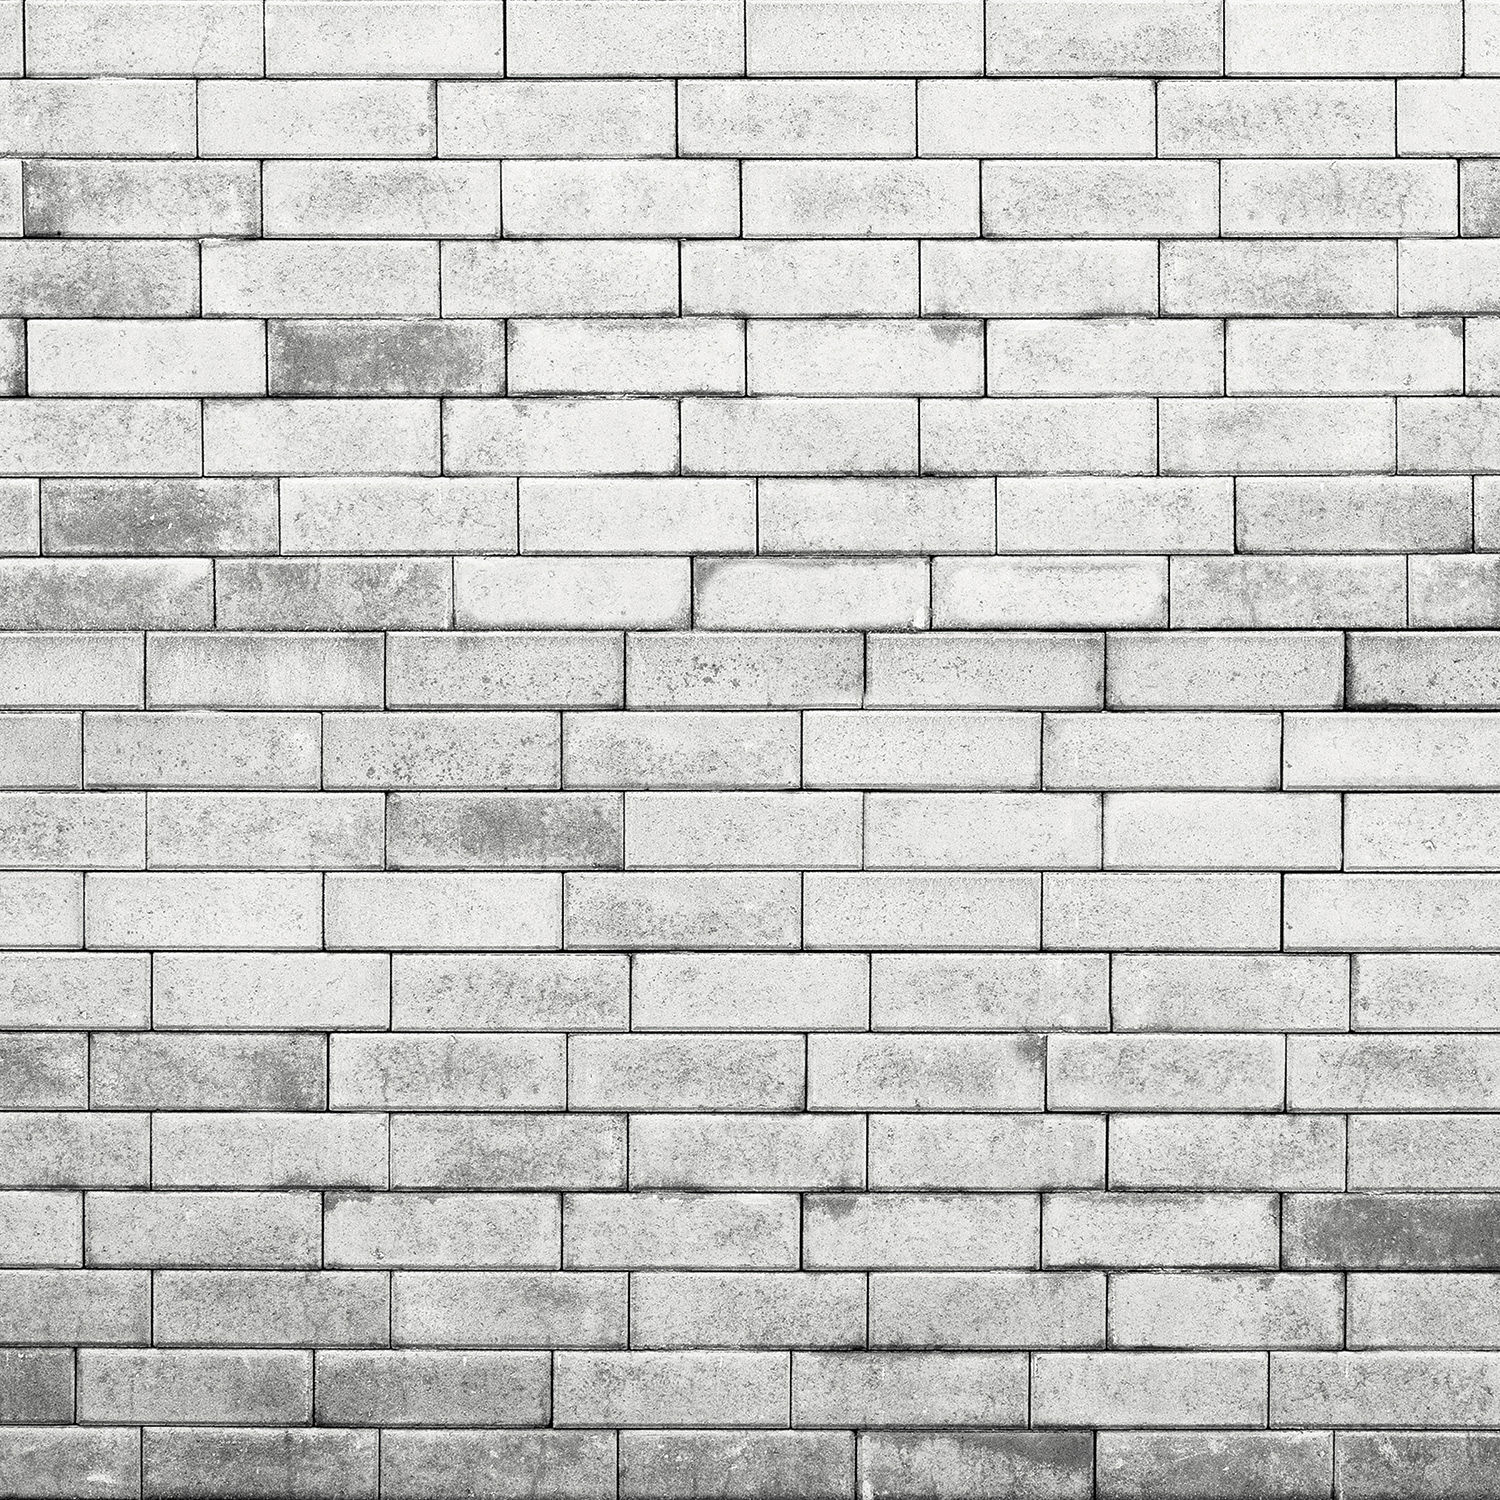 Westcott Brick Wall Art Canvas Backdrop with Hook-and-Loop Attachment (3 5  x 3 5', Gray)